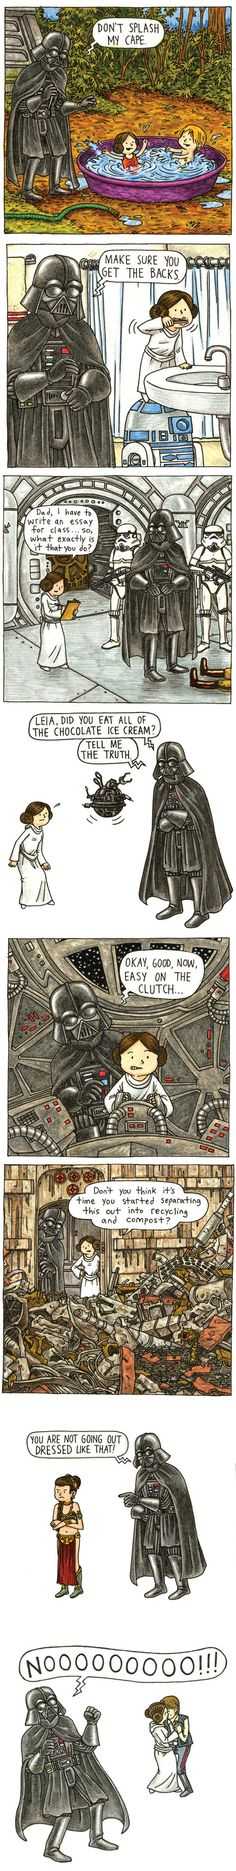 Growing up with Vader